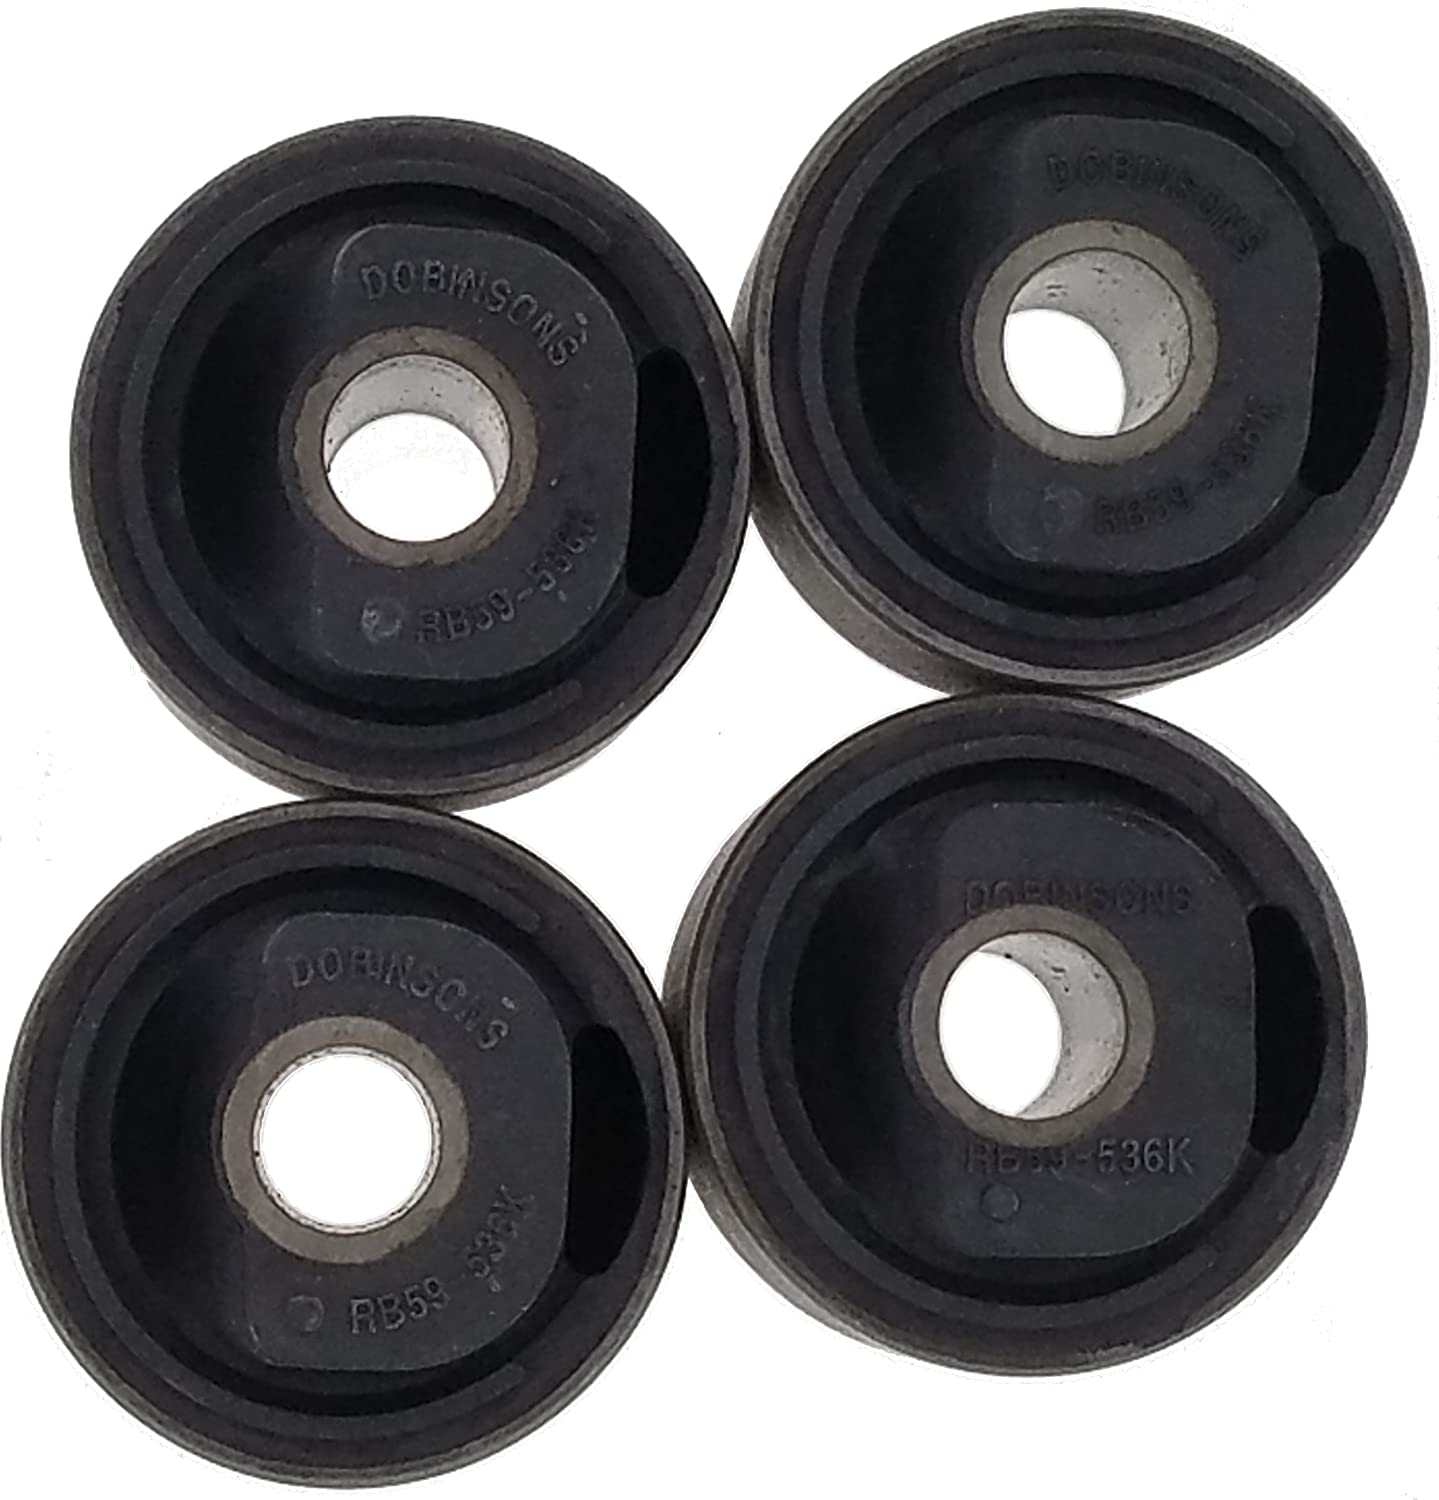 Dobinsons 5/° Caster Plate Kit for Toyota Land Cruiser 80 and 105 Series